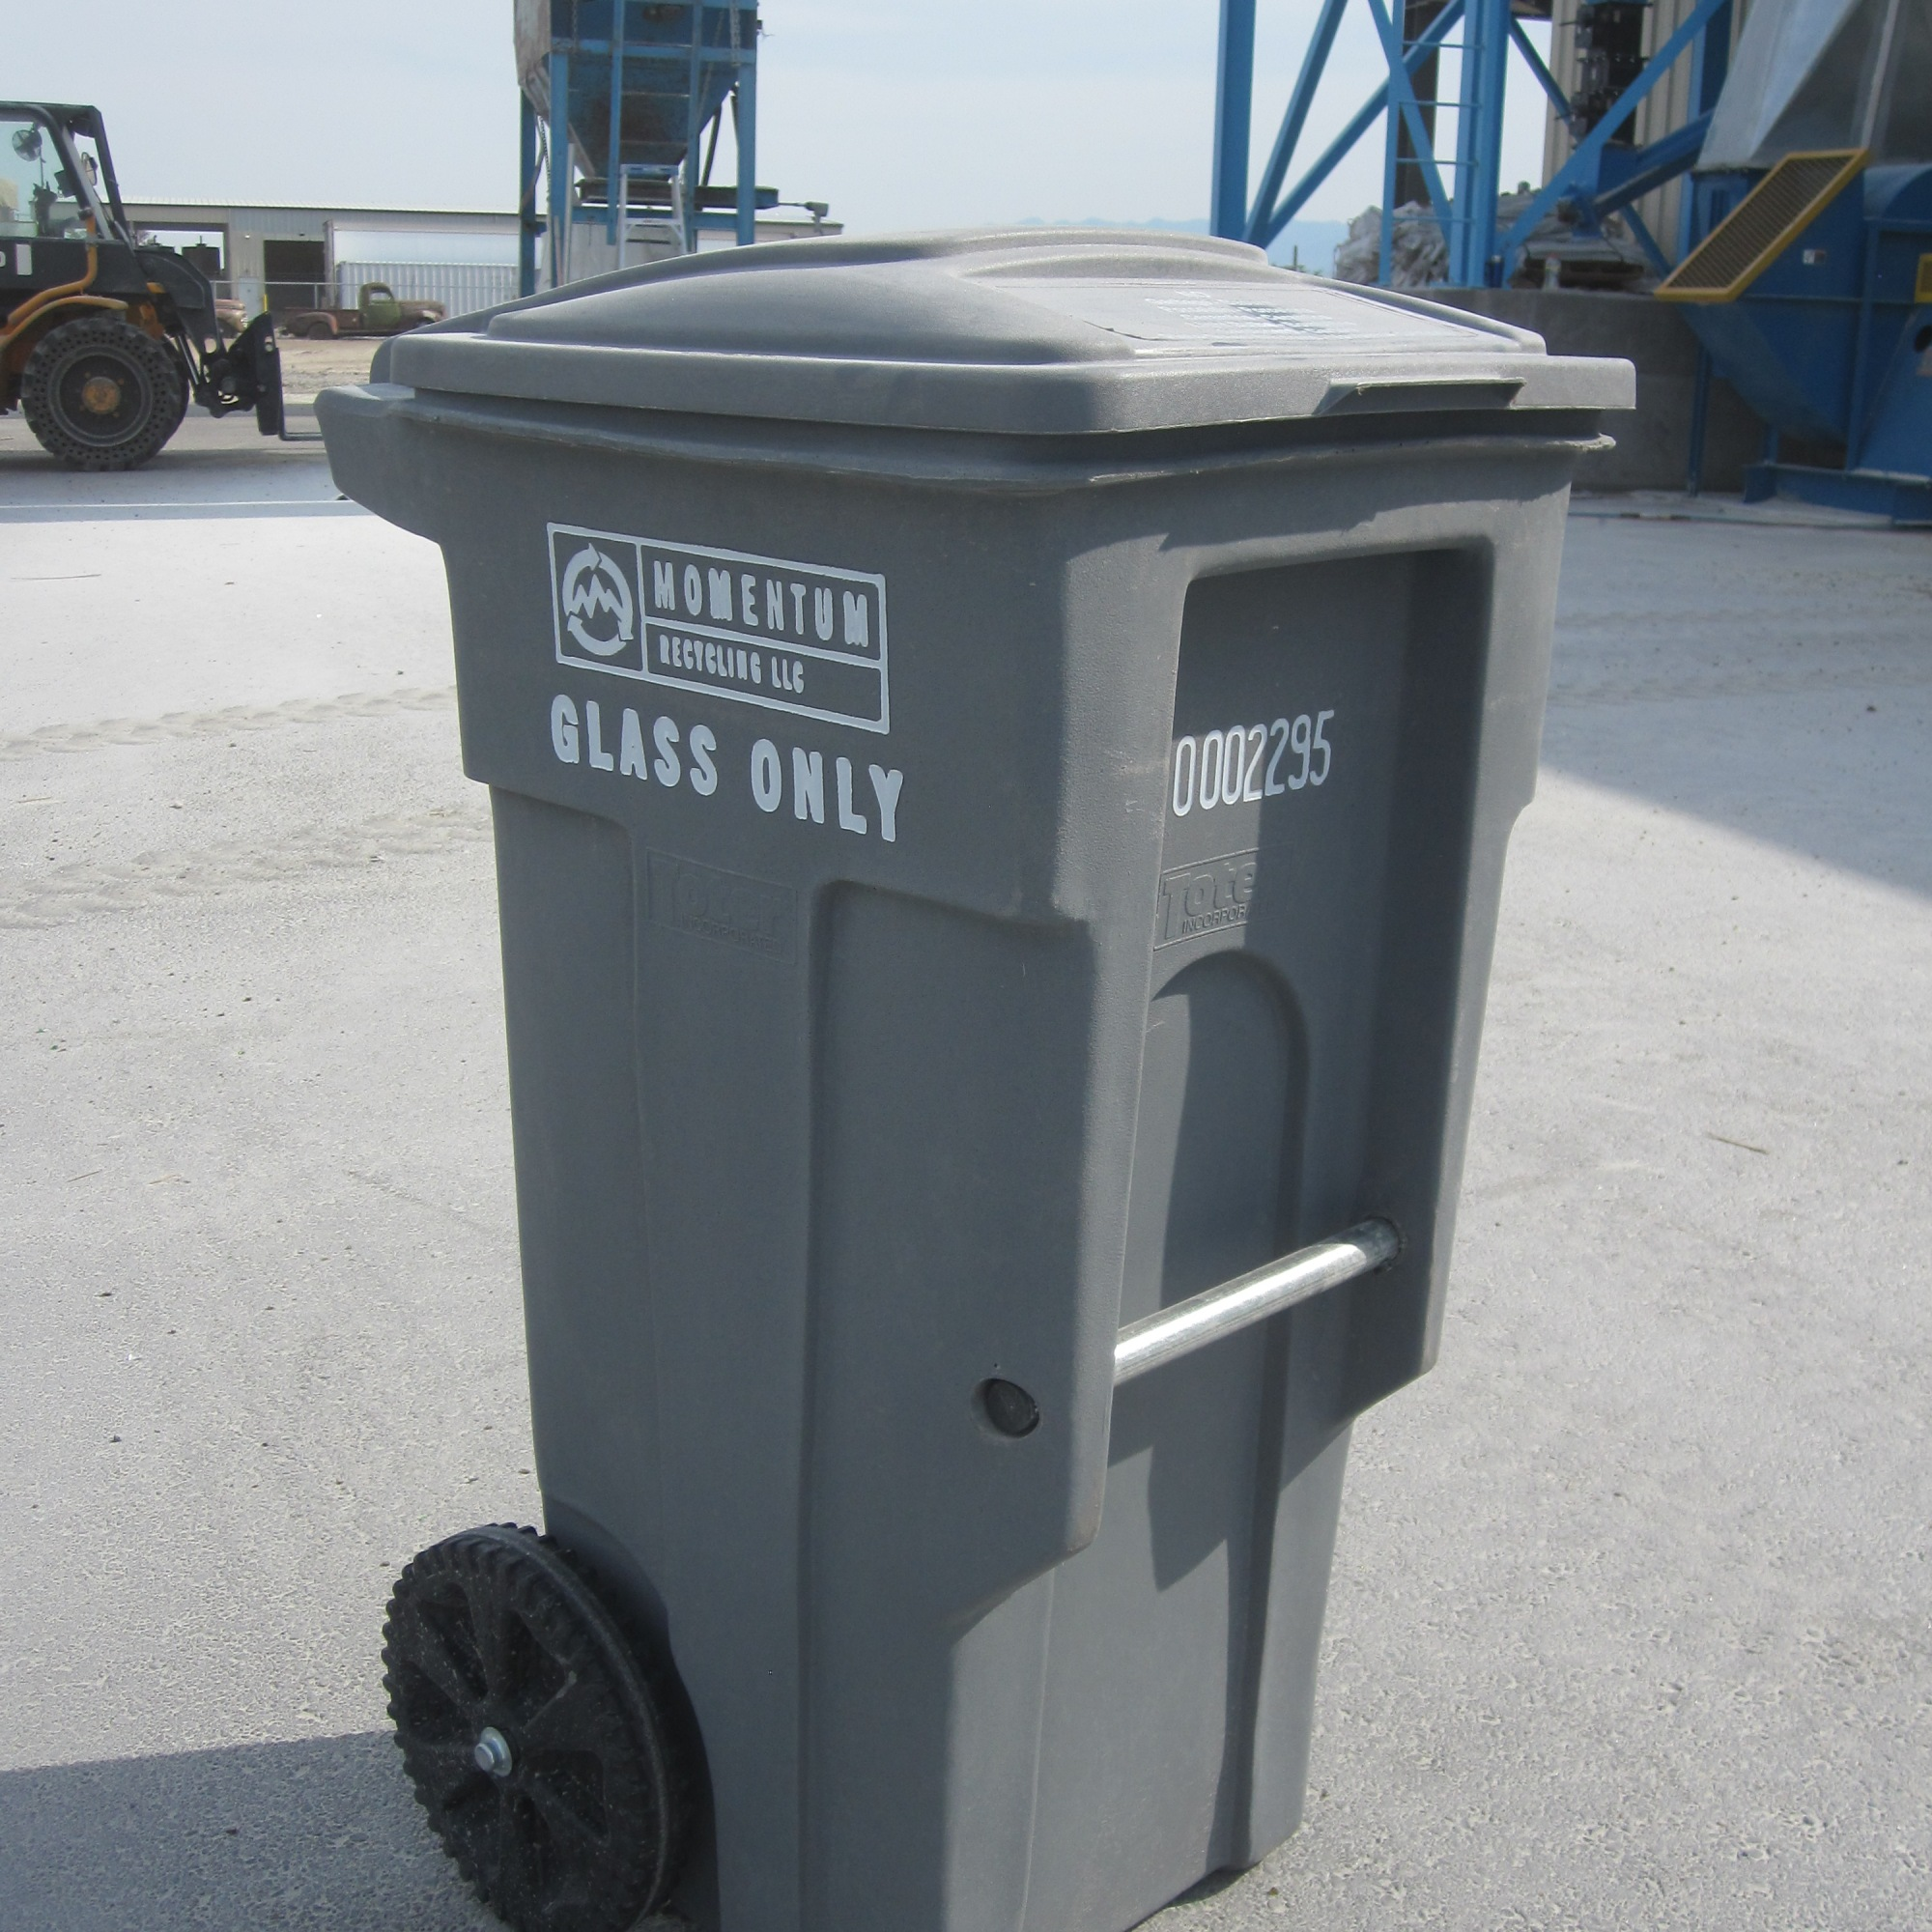 Momentum Recycling curbside glass bin.